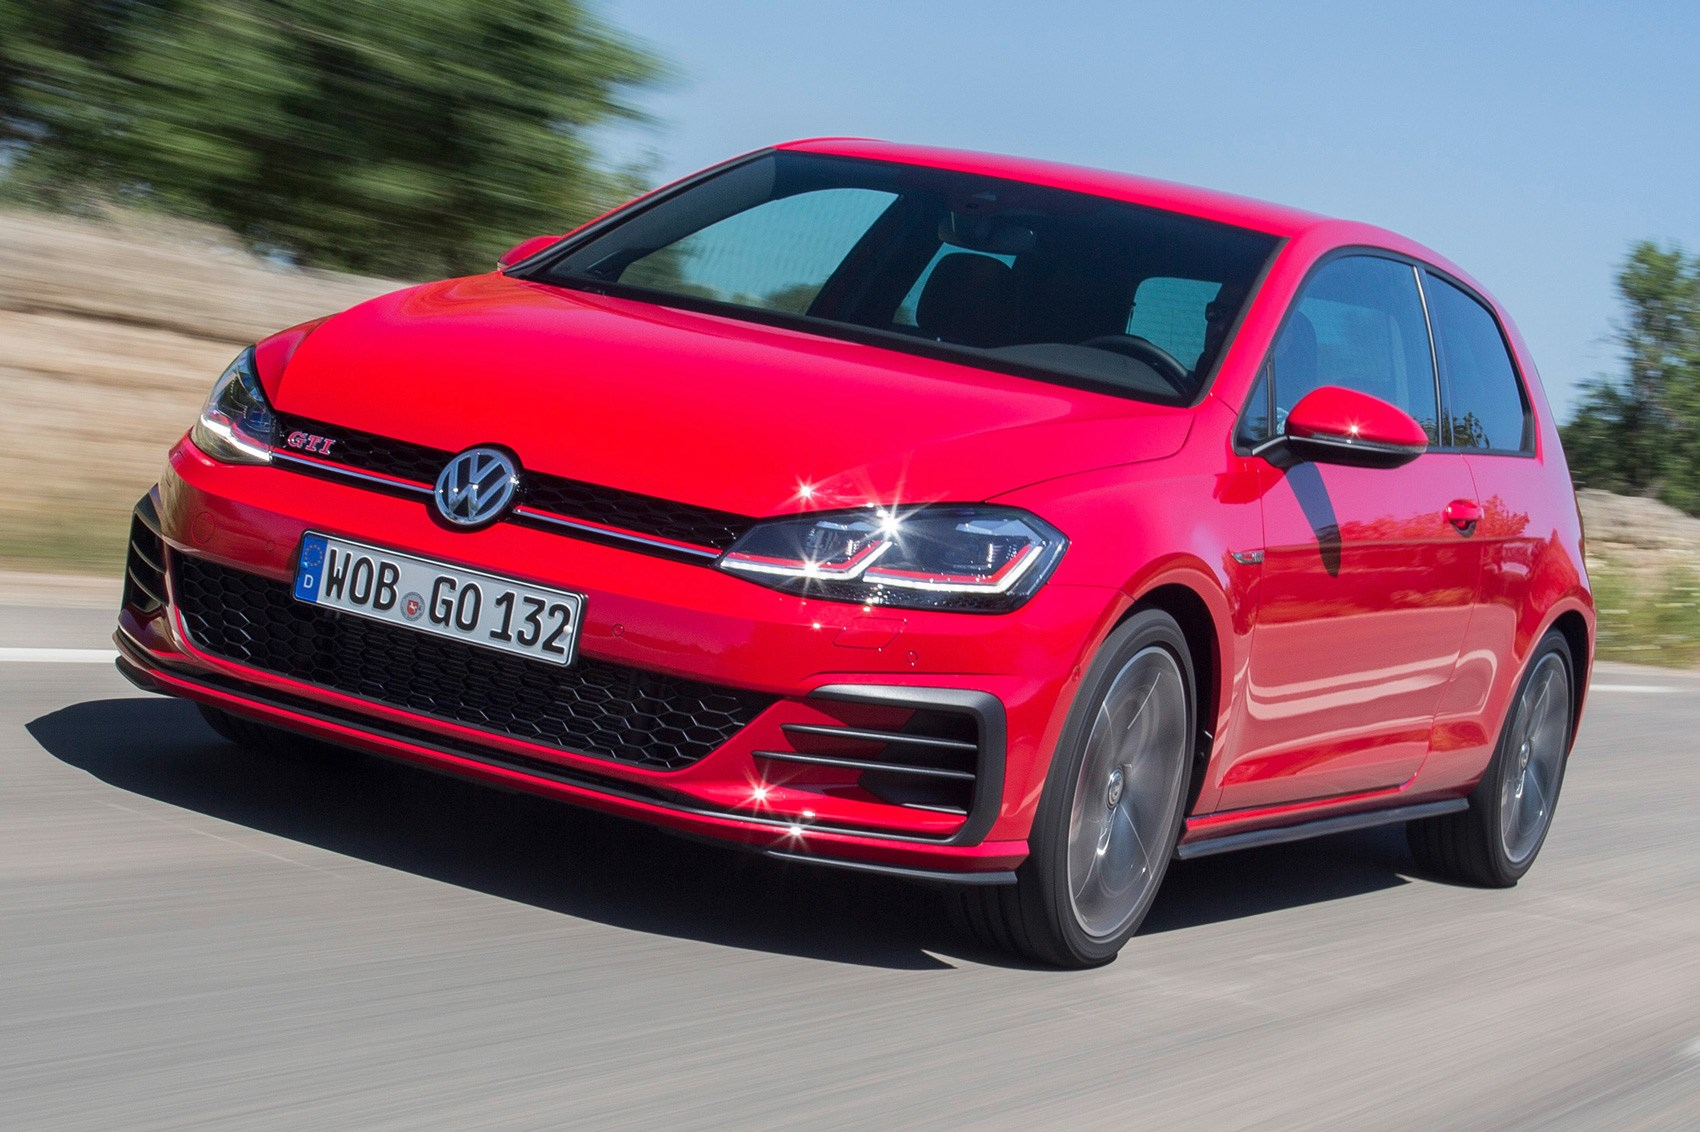 vw golf gti performance pack mk7 facelift 2017 review by car magazine. Black Bedroom Furniture Sets. Home Design Ideas